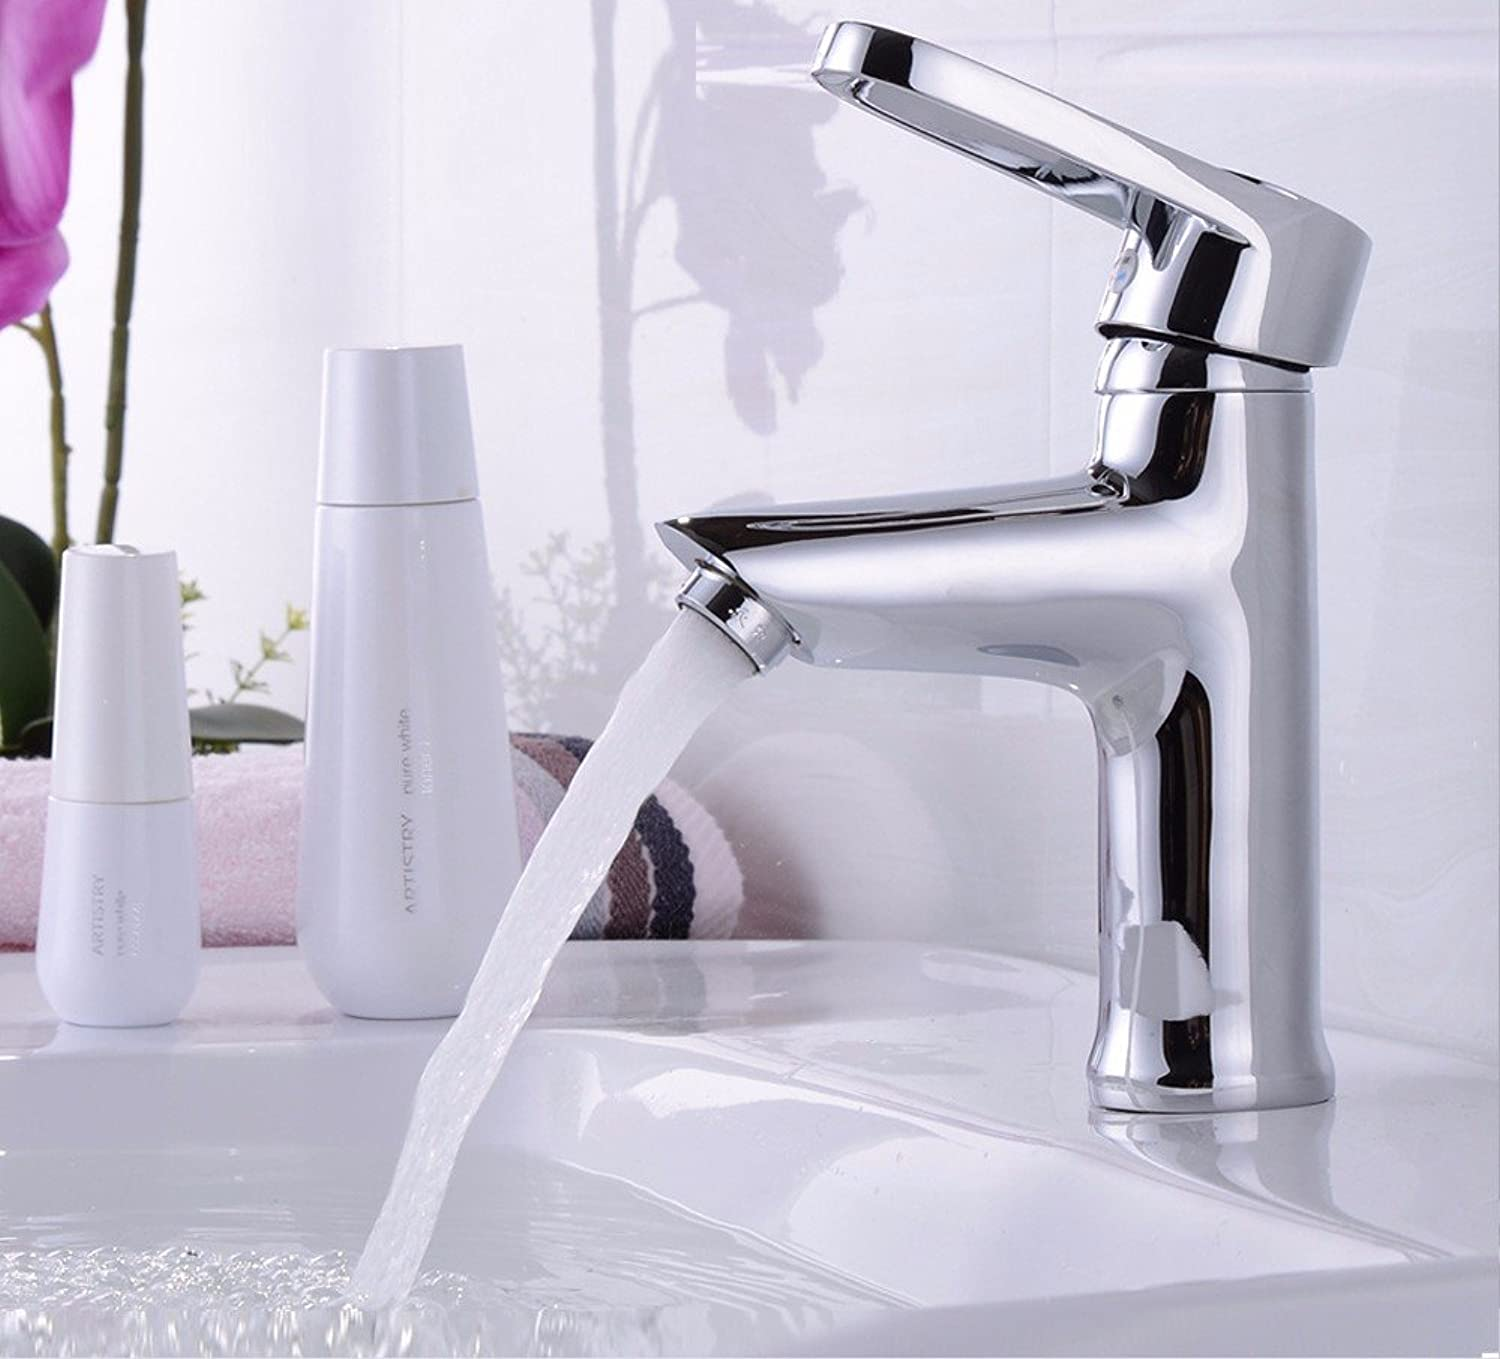 Hlluya Professional Sink Mixer Tap Kitchen Faucet Basin taps, full copper single-mixing of hot and cold water faucets, Single Hole Faucet